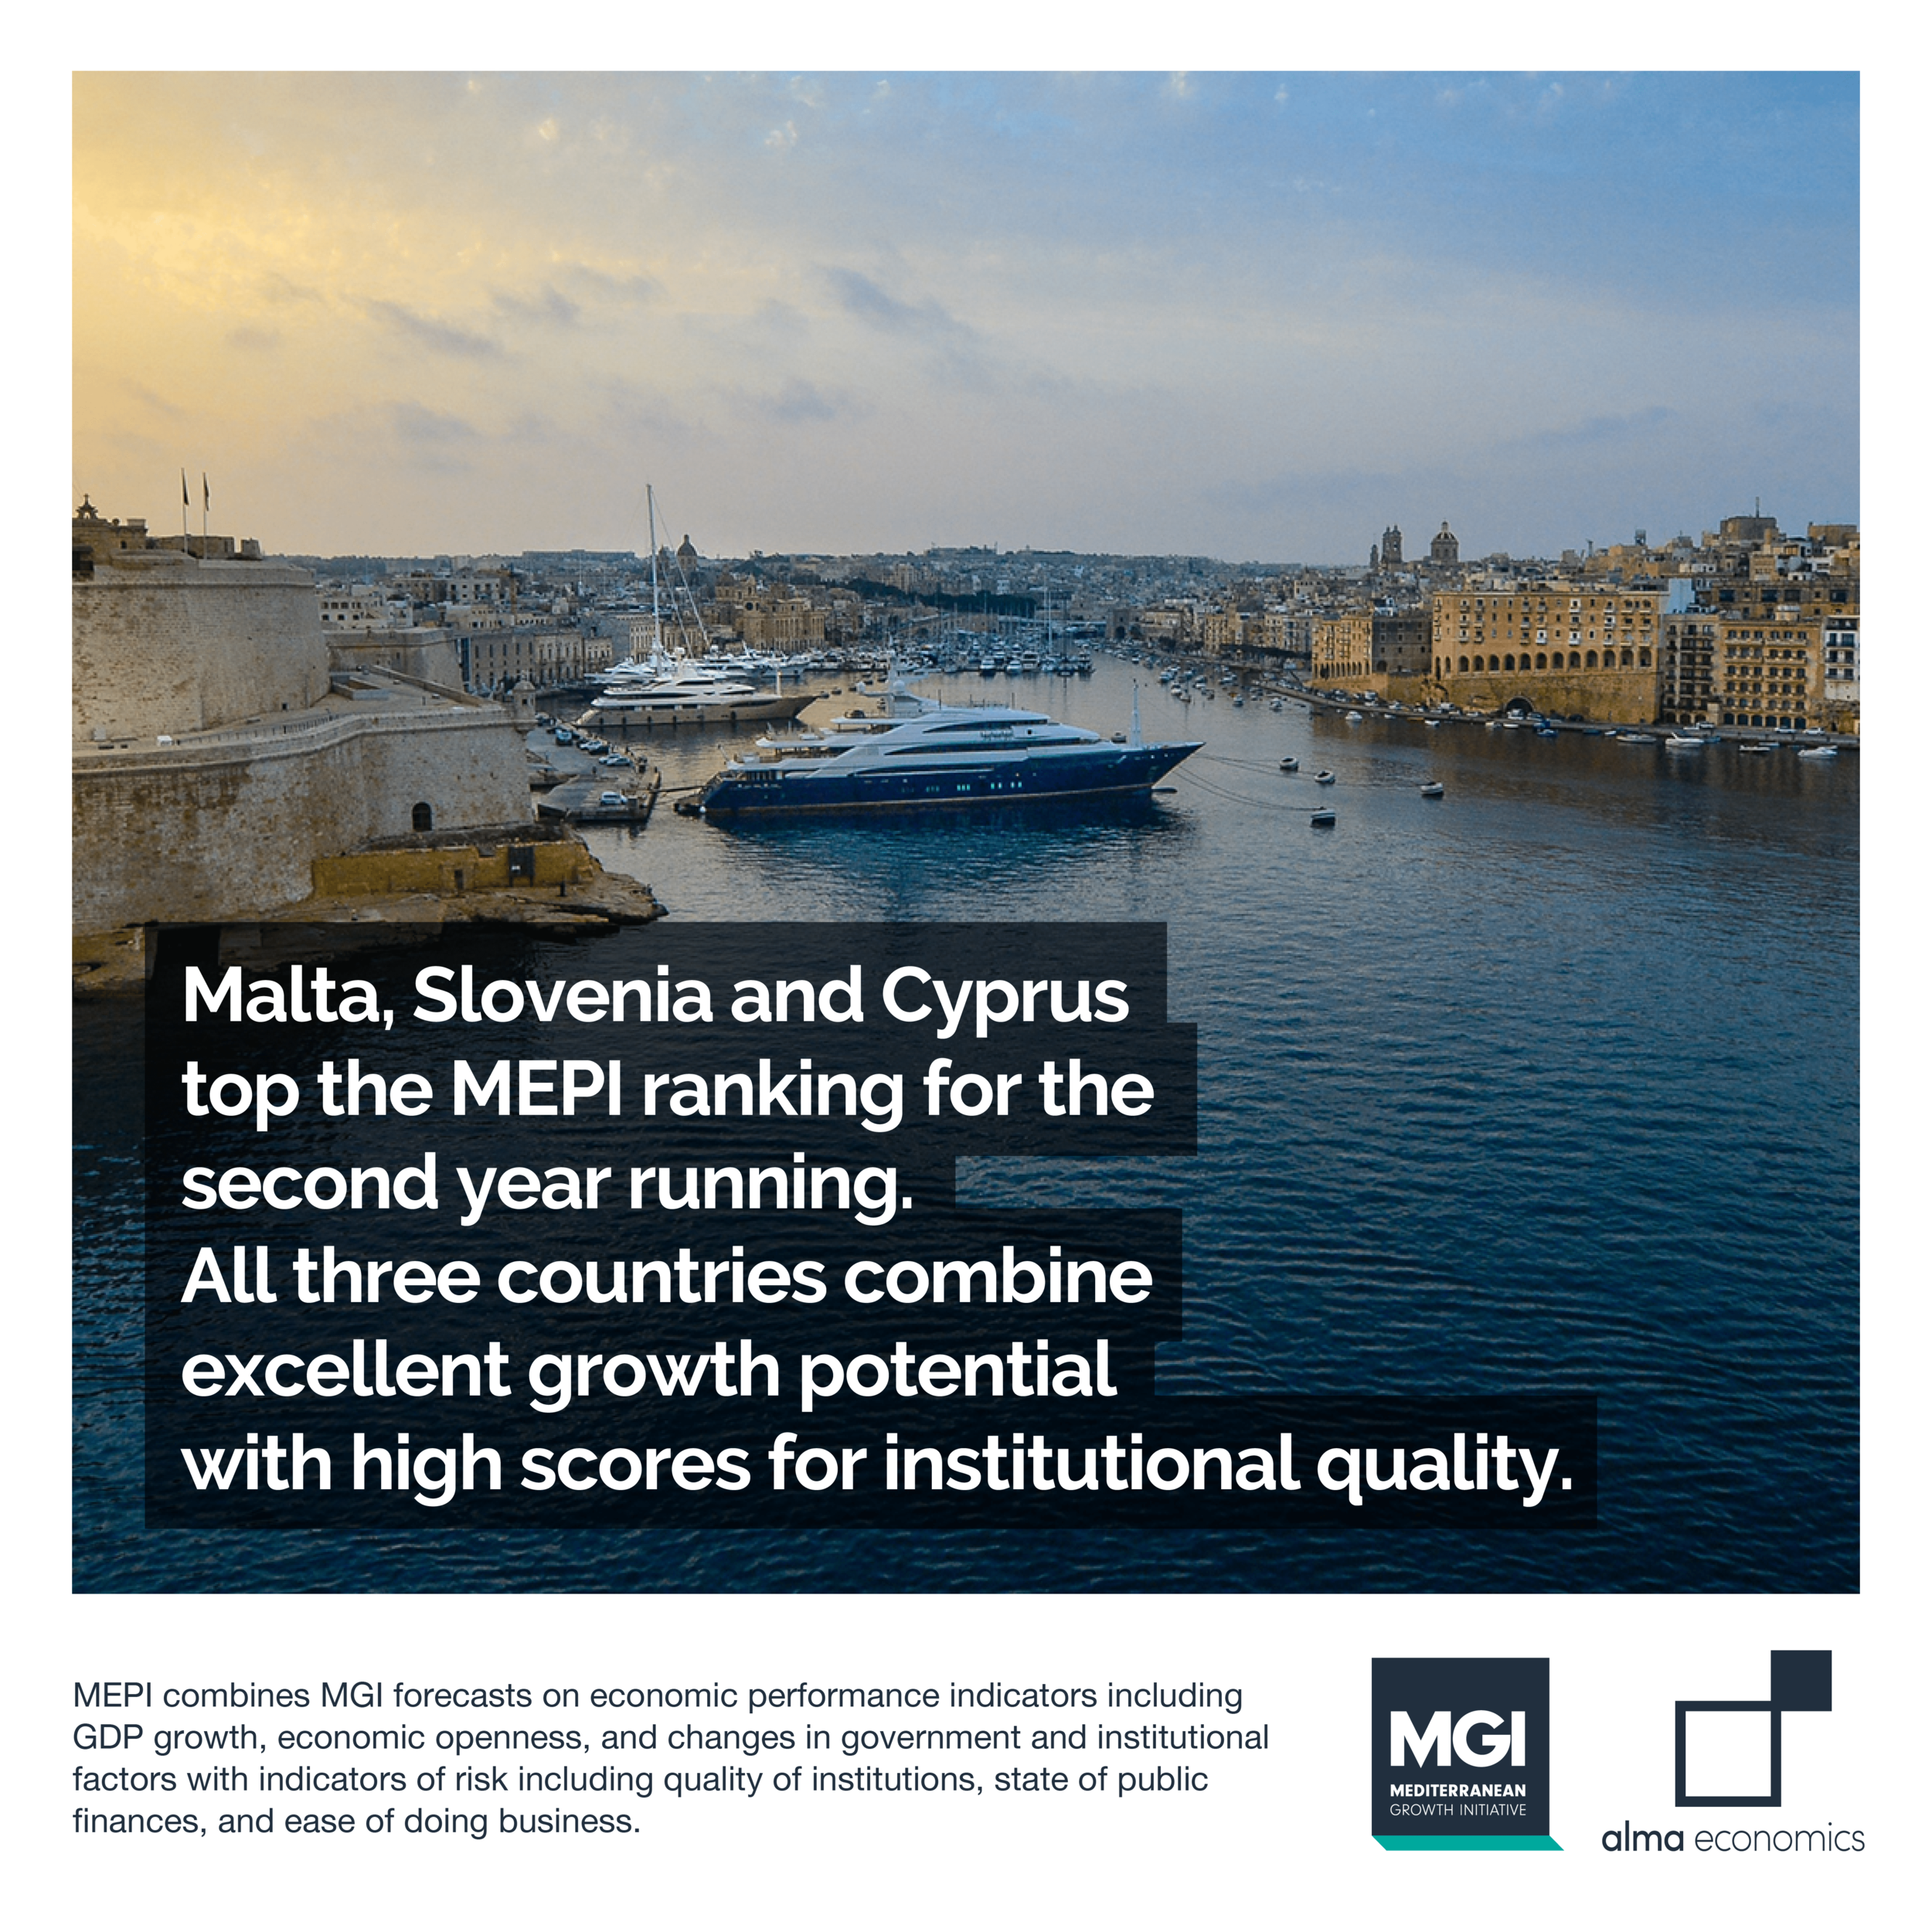 Malta, Slovenia and Cyprus are ranked as the best investment destinations in the Med -